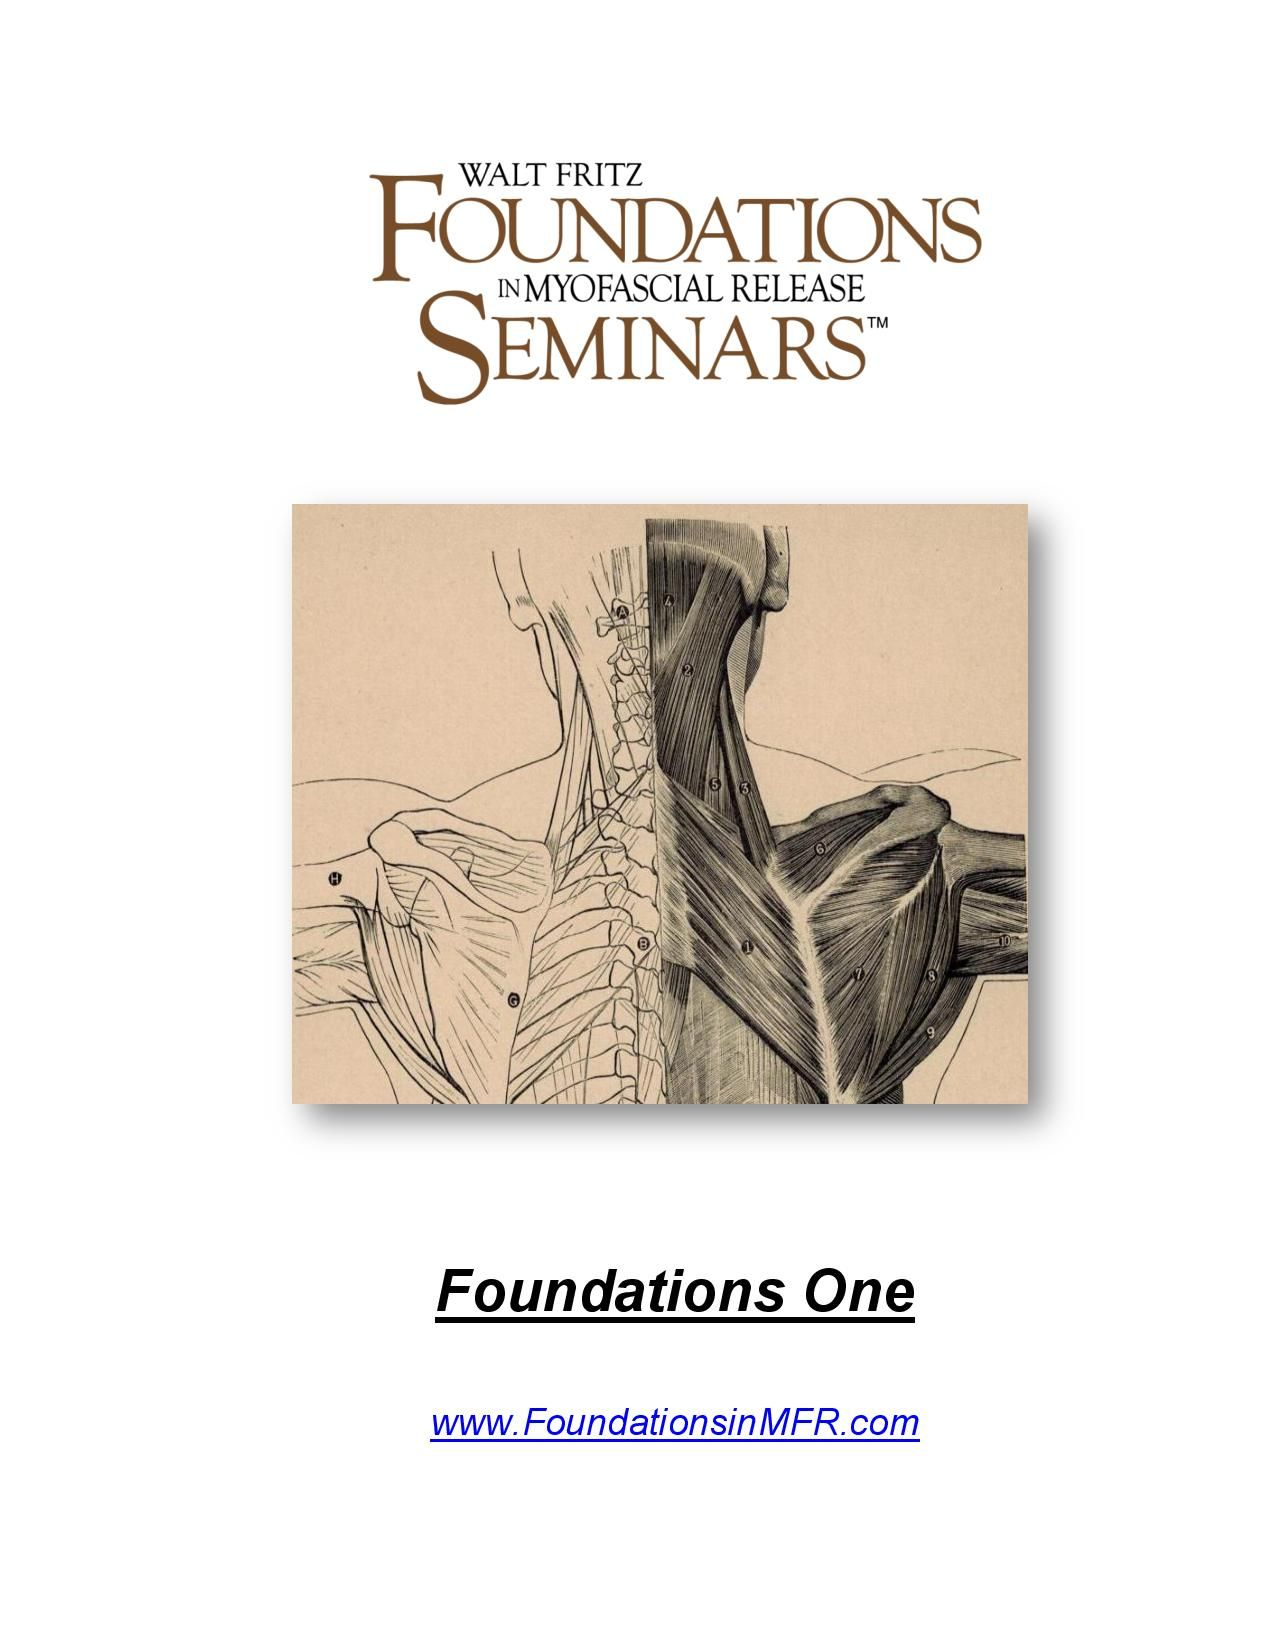 The Updated 2015 Foundations In Myofascial Release Seminar Syllabus